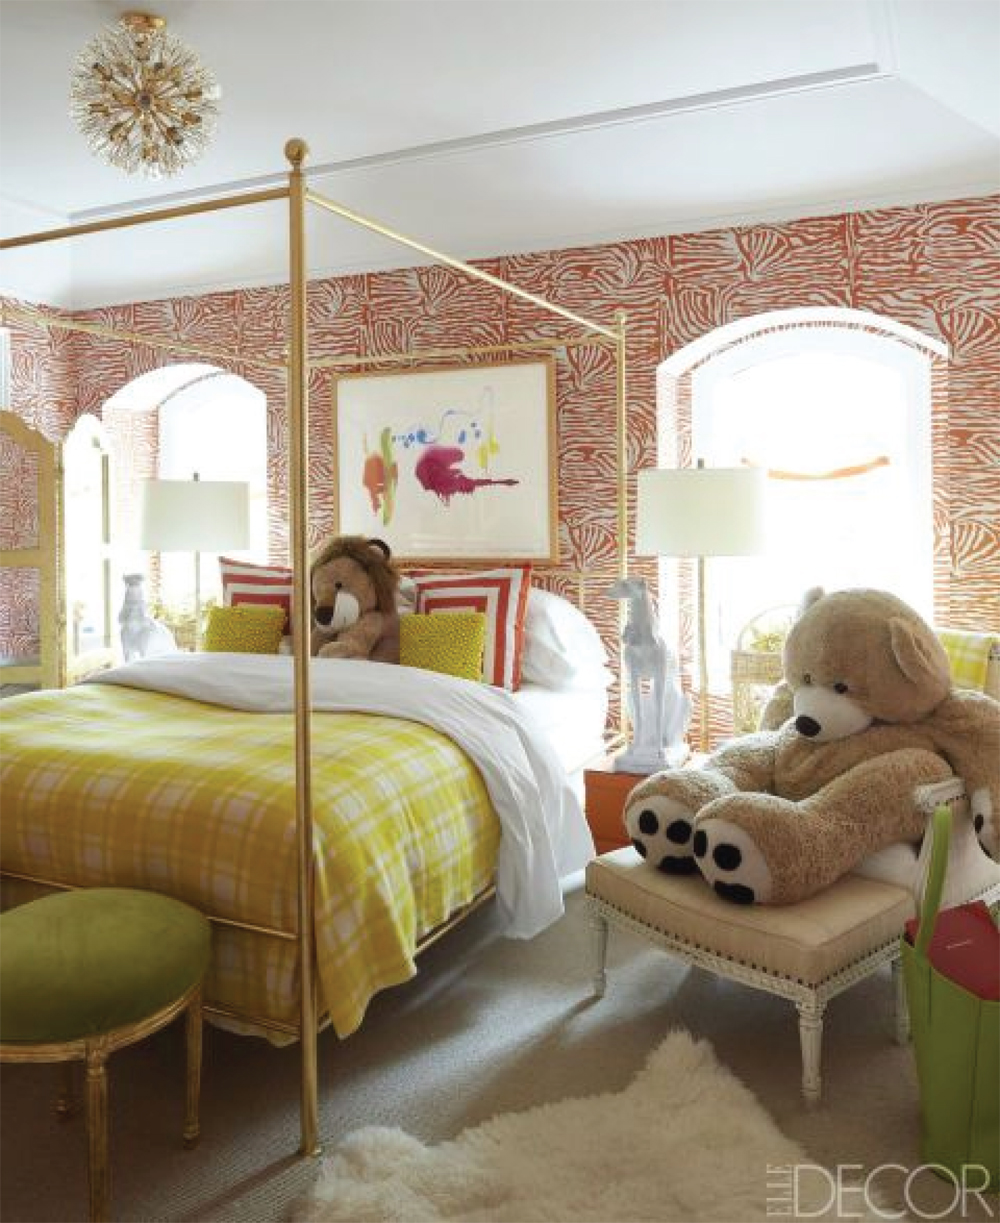 How to Style a Kid's Bedroom | Stuffed Animals | Akin Design Studio Blog